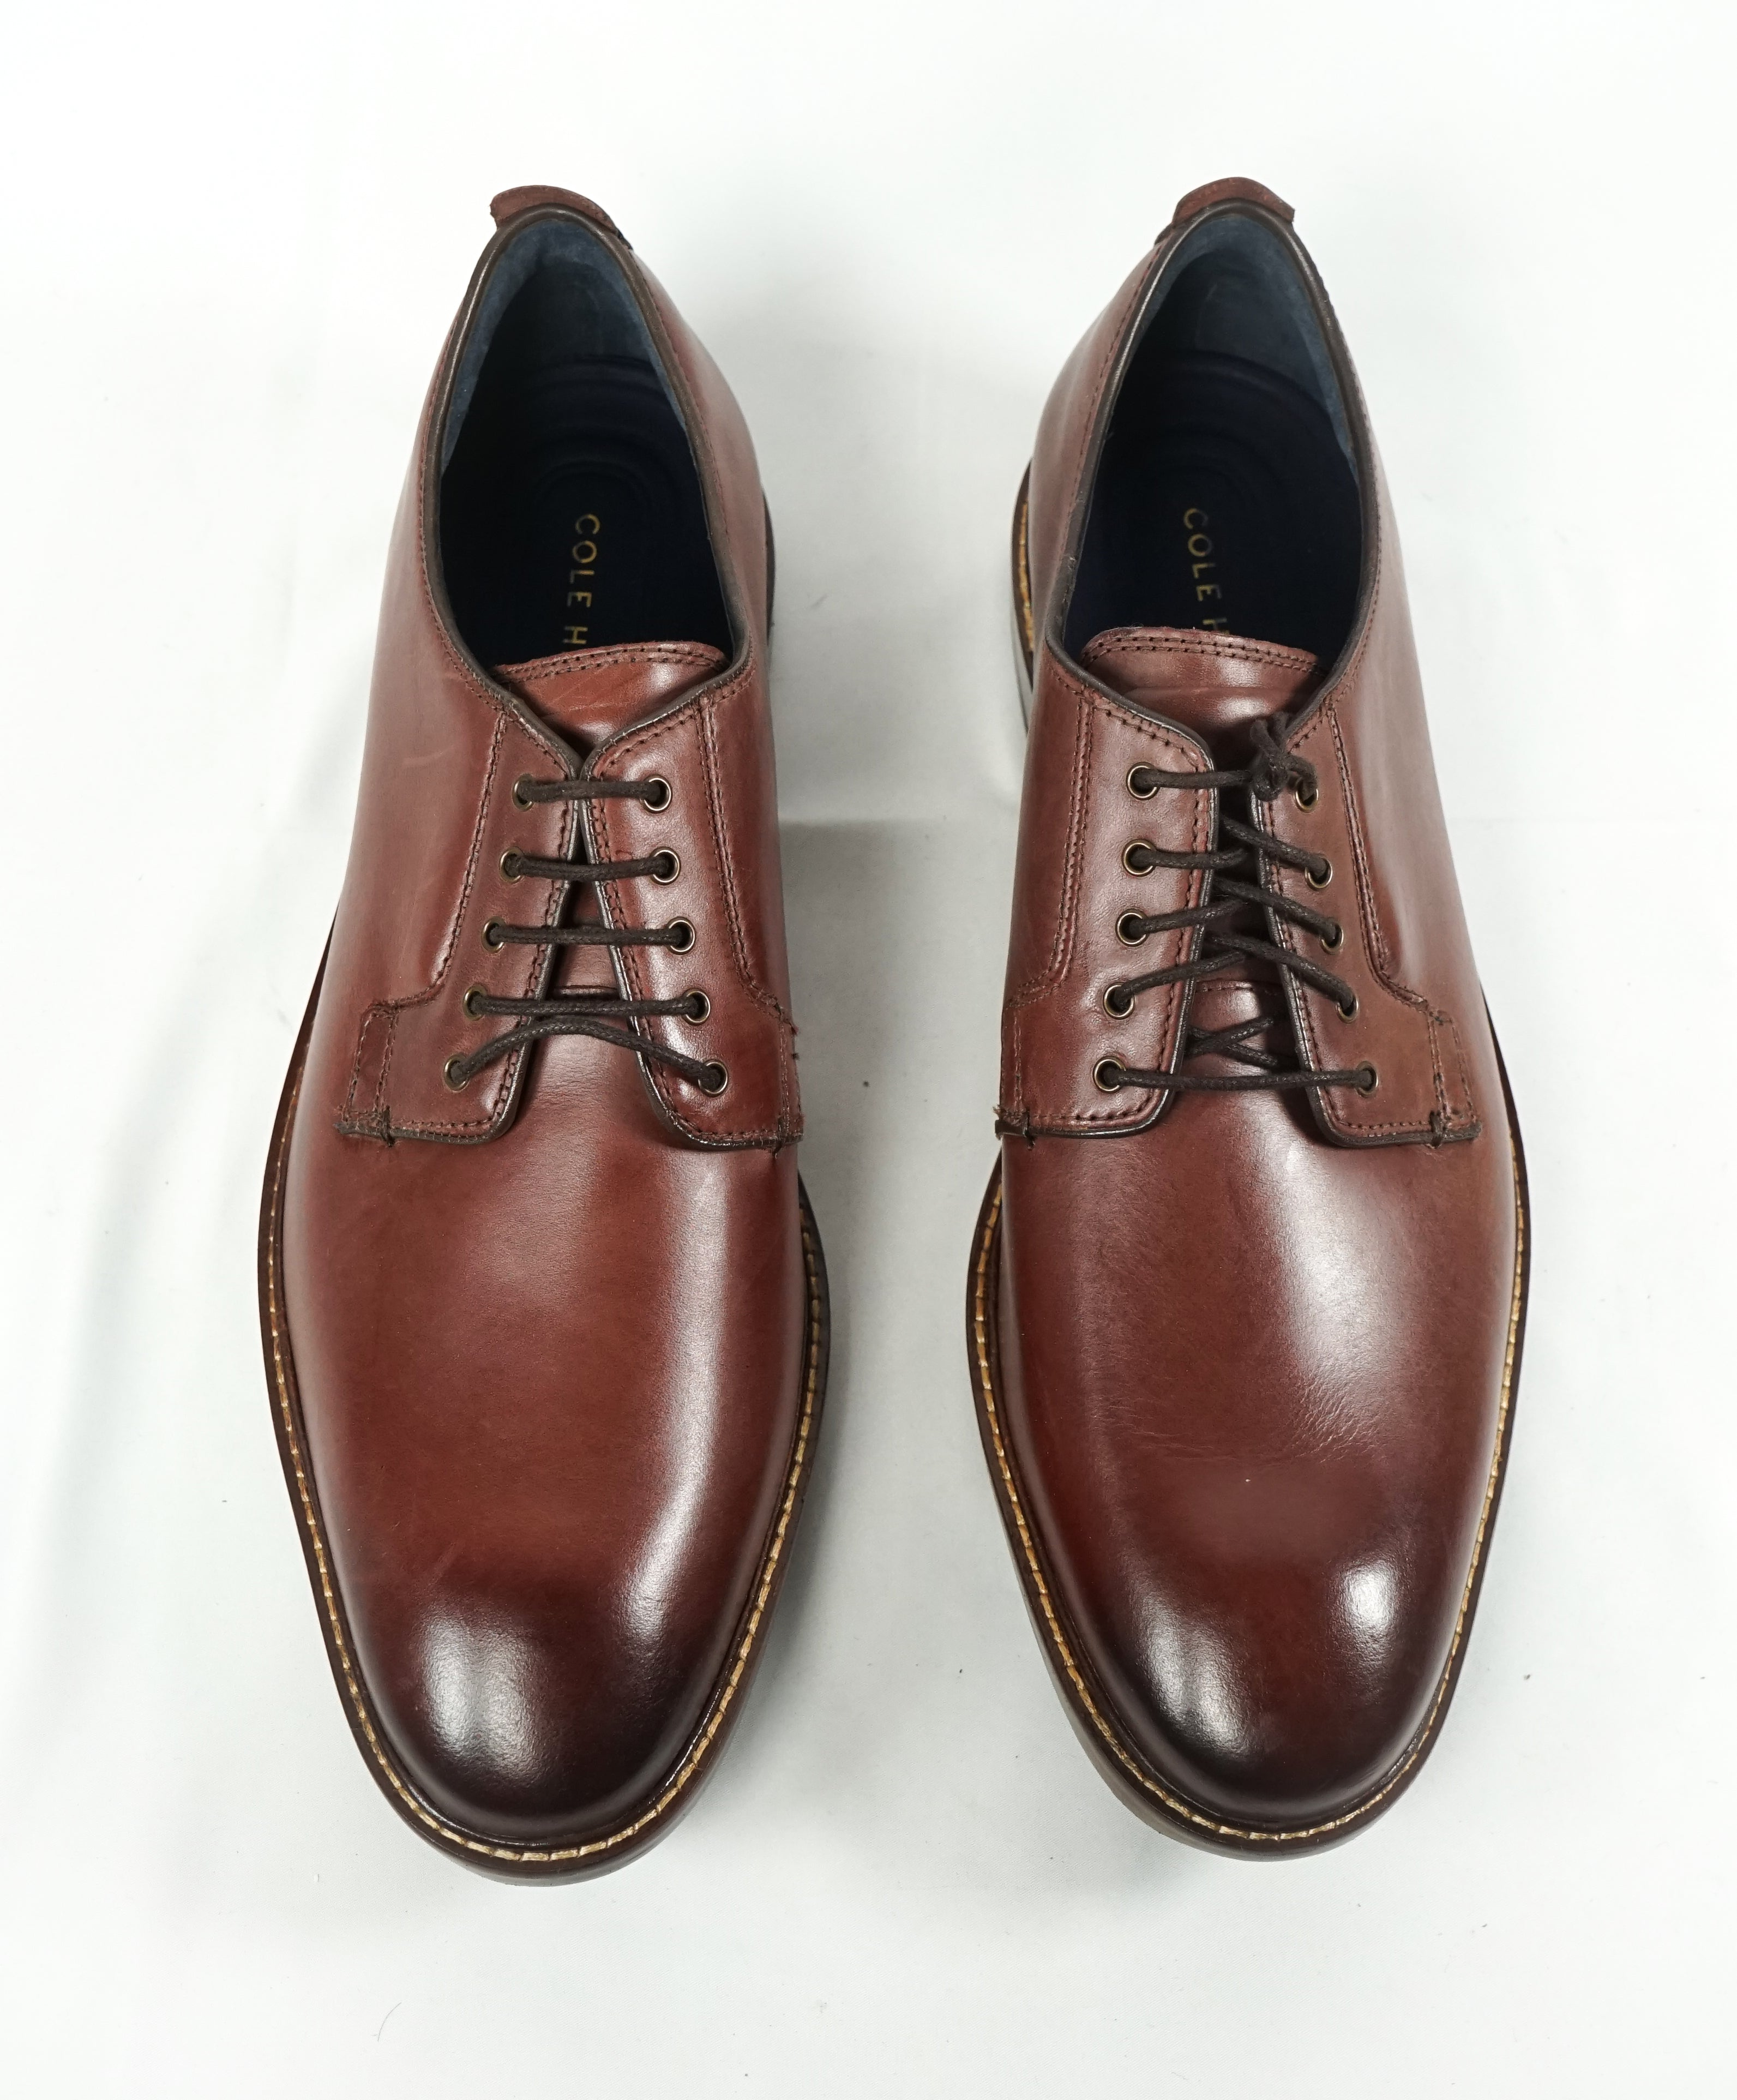 "COLE HAAN - Metal Eyelet Brown Burnished Tip Oxfords ""Grand OS"" - 12"